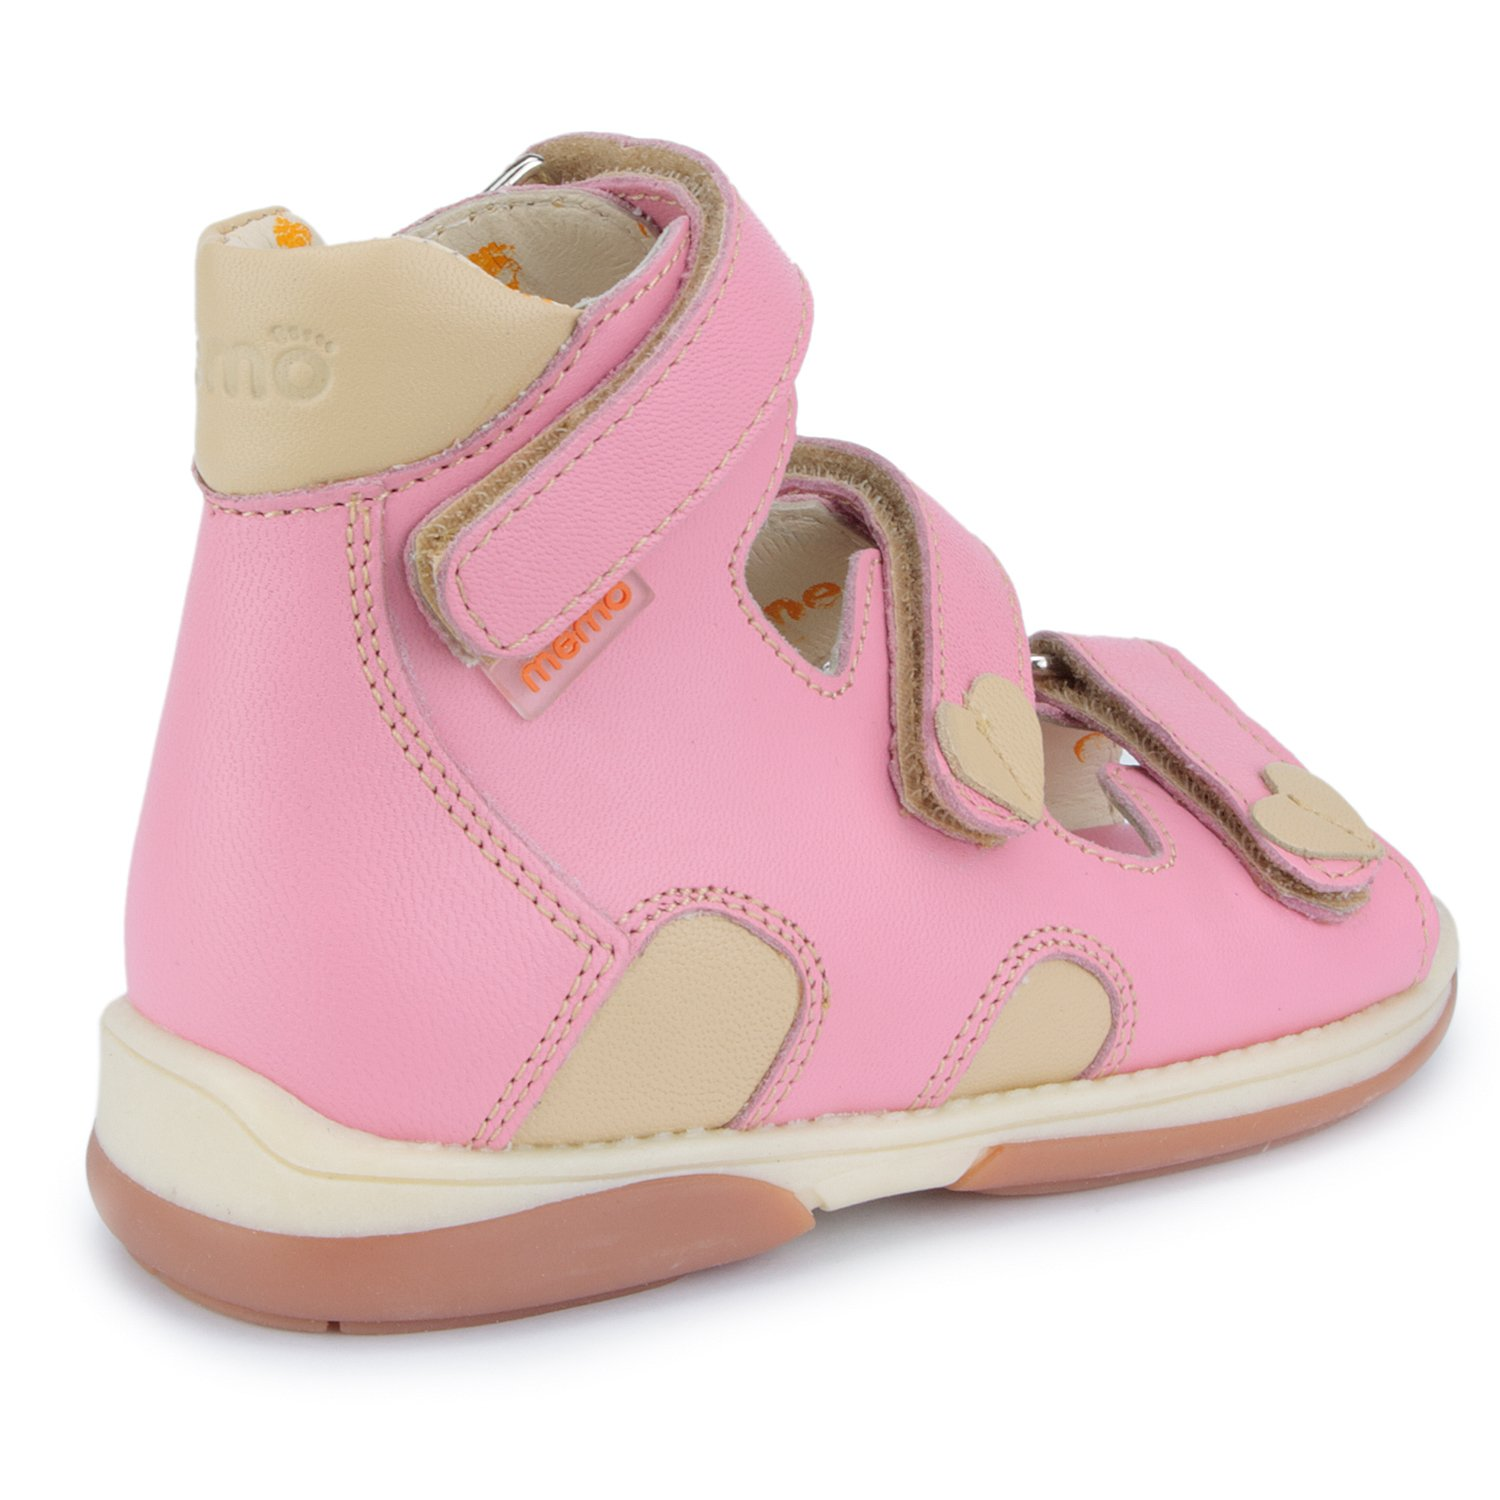 Dynamic Happy Spring And Autumn Female Baby 0-1 Years Old Canvas Soft Bottom Baby Toddler Shoes Buy One Get One Free Mother & Kids